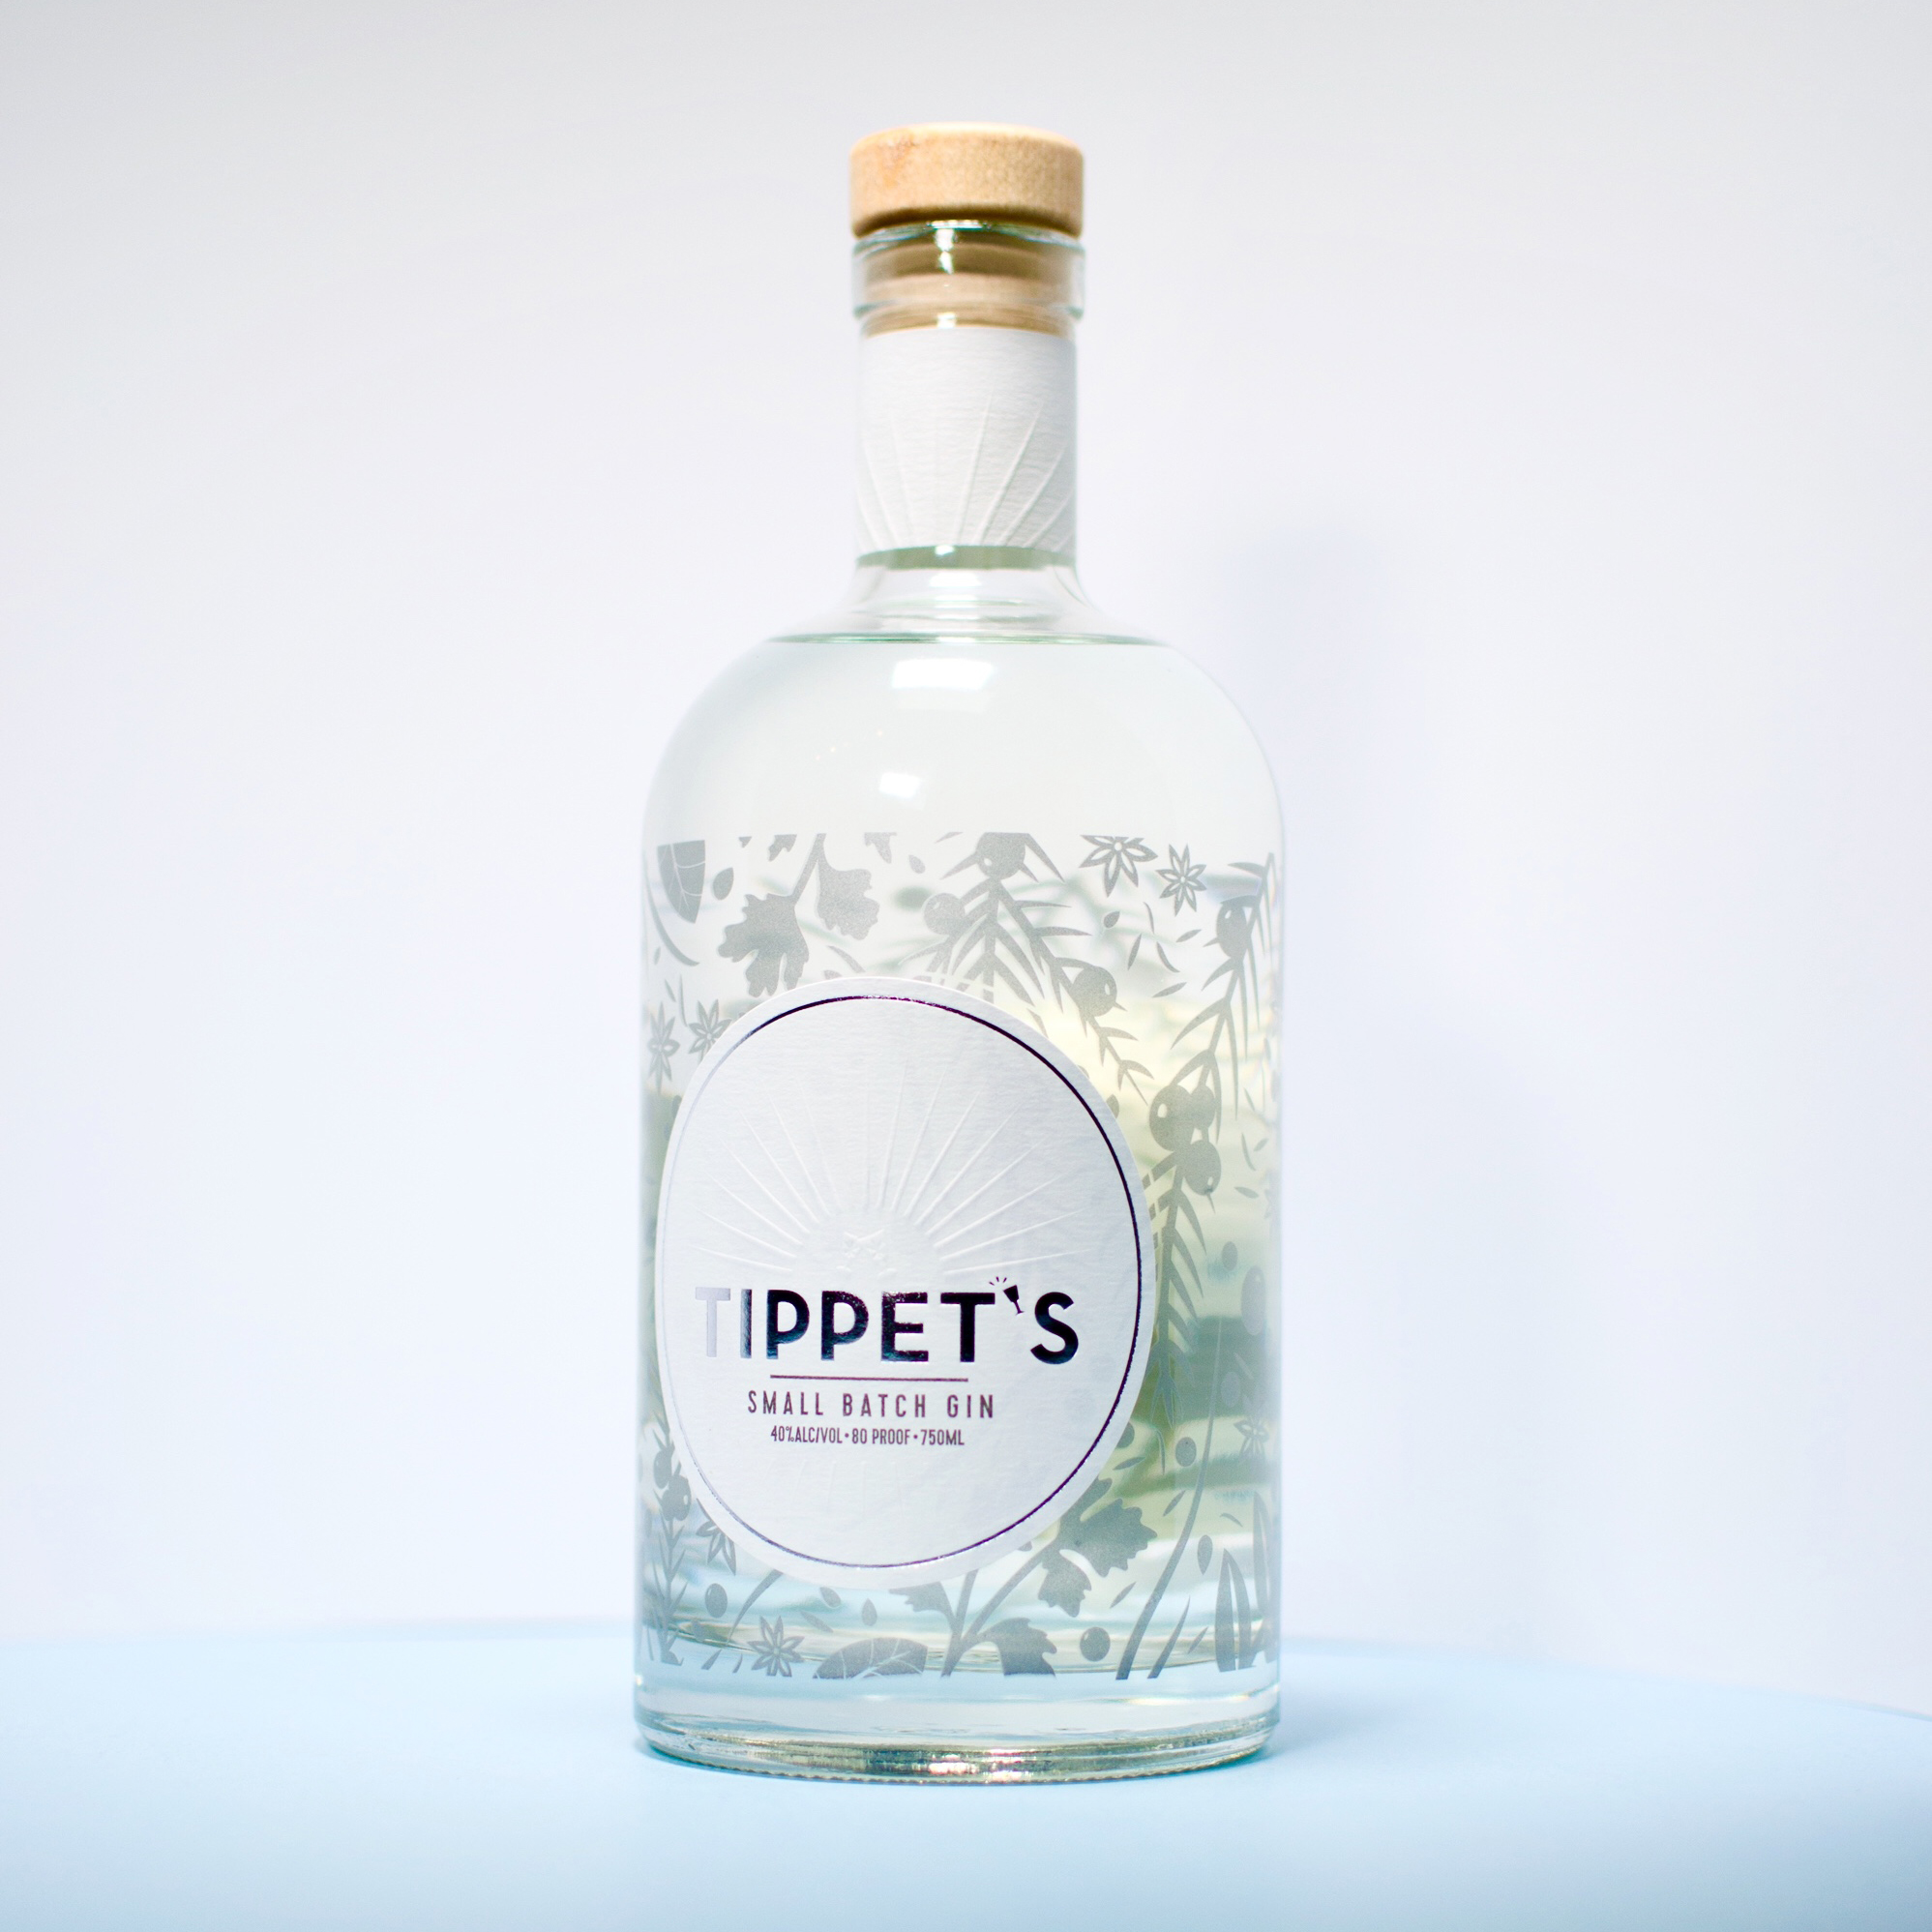 Tippet's: Small Batch Gin